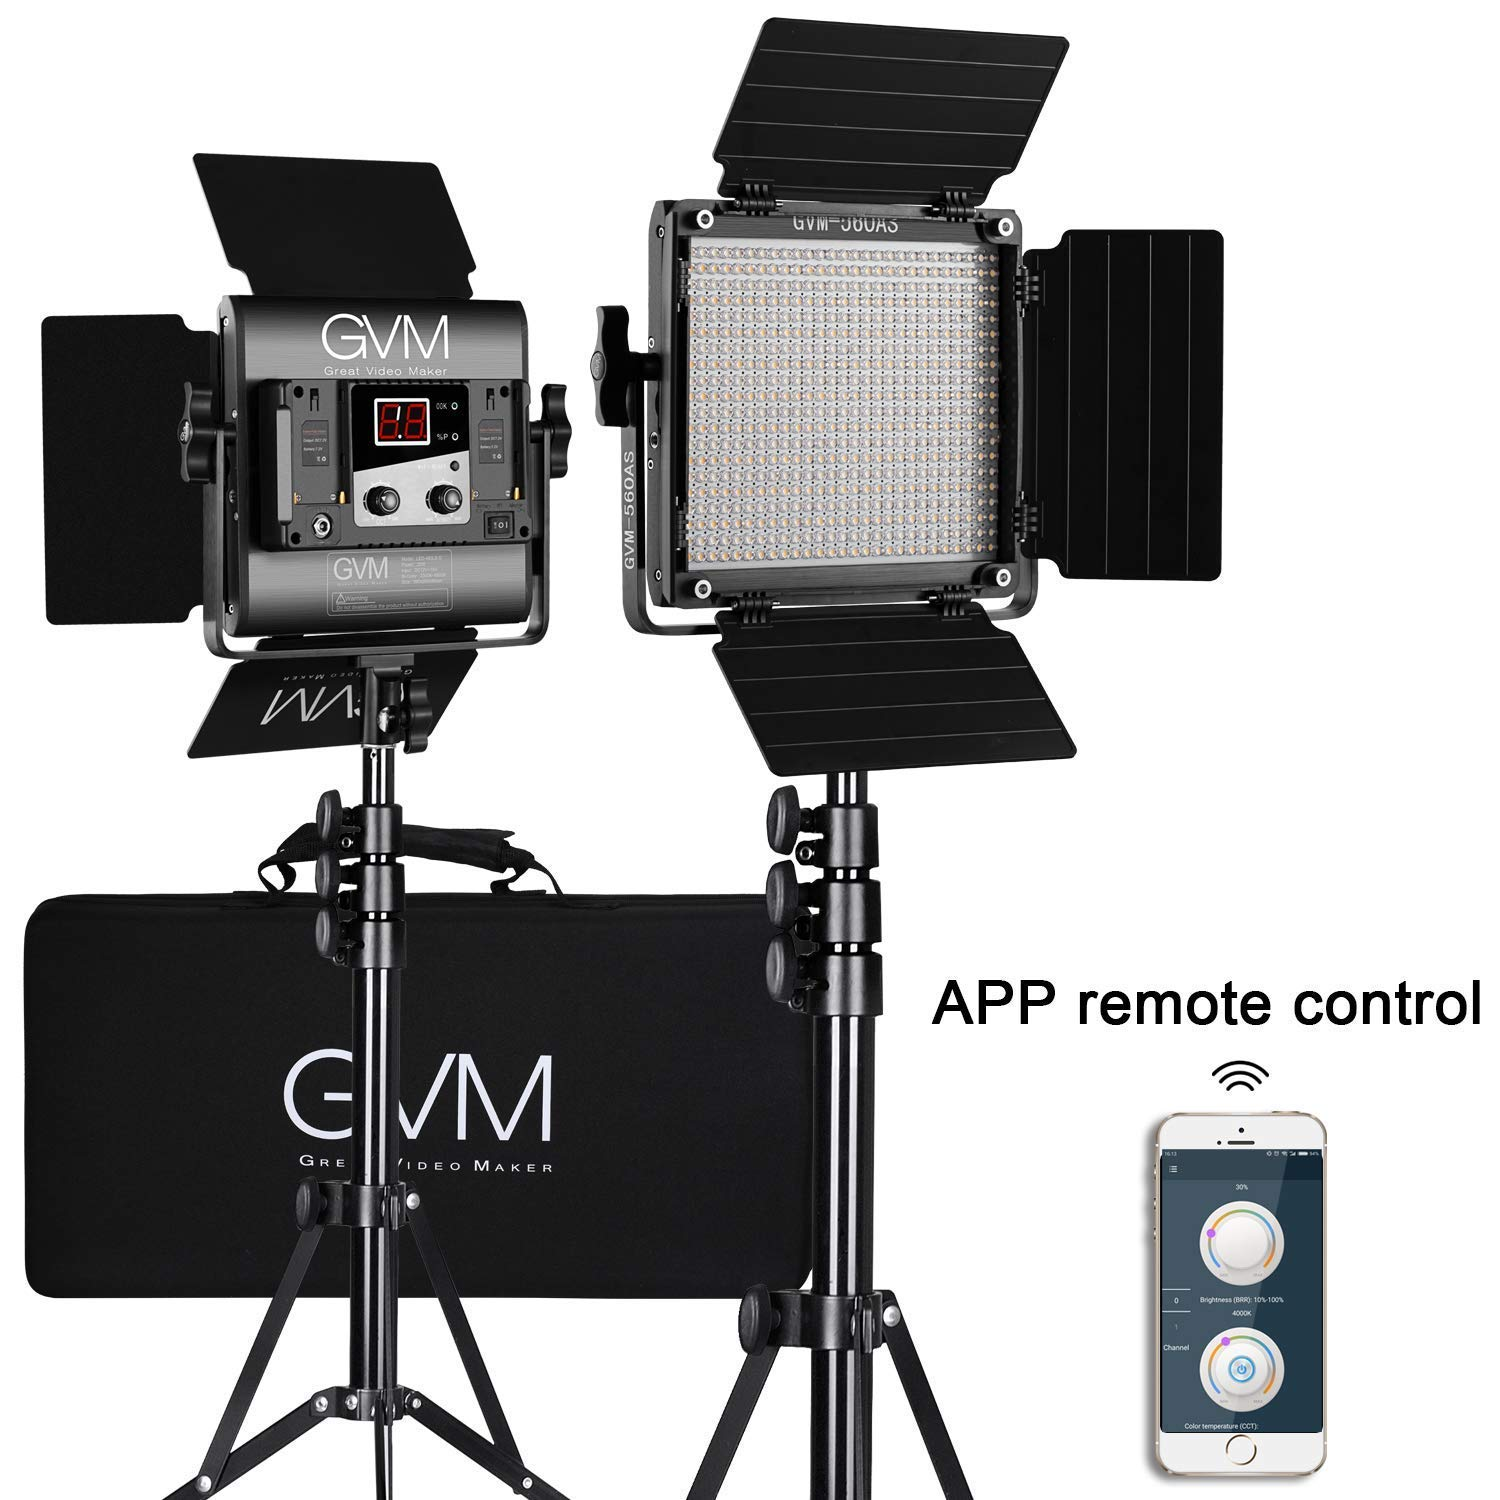 GVM 560 LED Video Light, Dimmable Bi-Color, 2 Packs Photography Lighting with APP Intelligent Control System, Lighting for YouTube, Studio, Outdoor, Video Lighting Kit, 2300K-6800K, CRI 97+ by GVM Great Video Maker